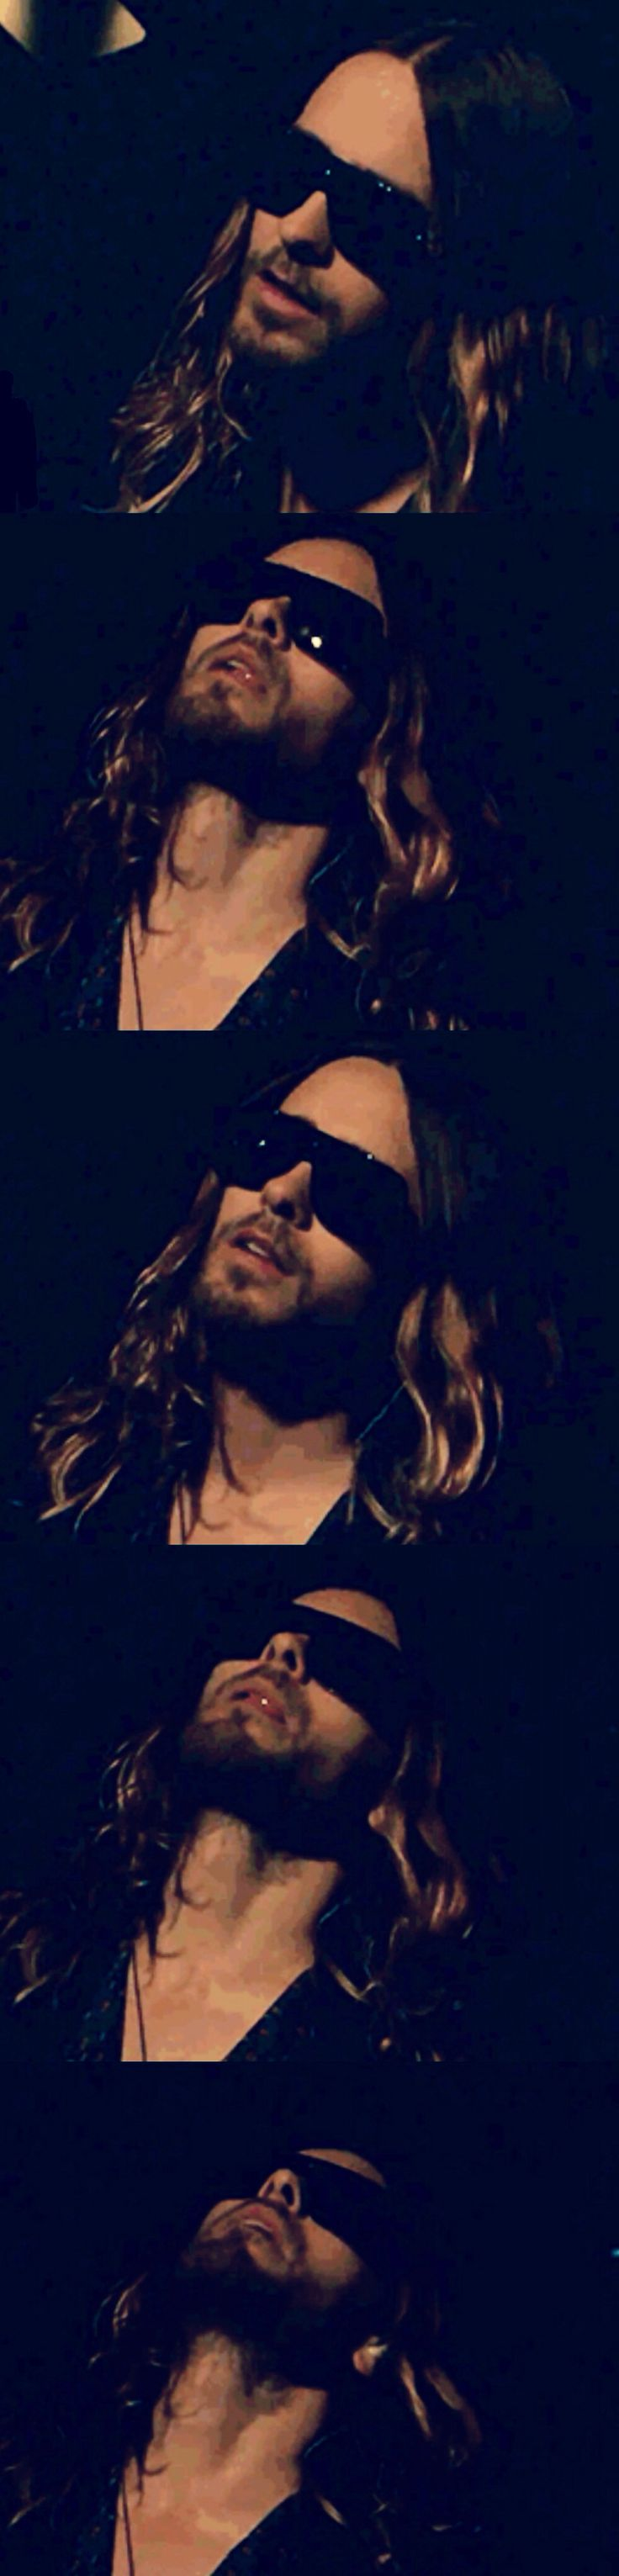 SEXY *Cough, cough*...Jared Leto!